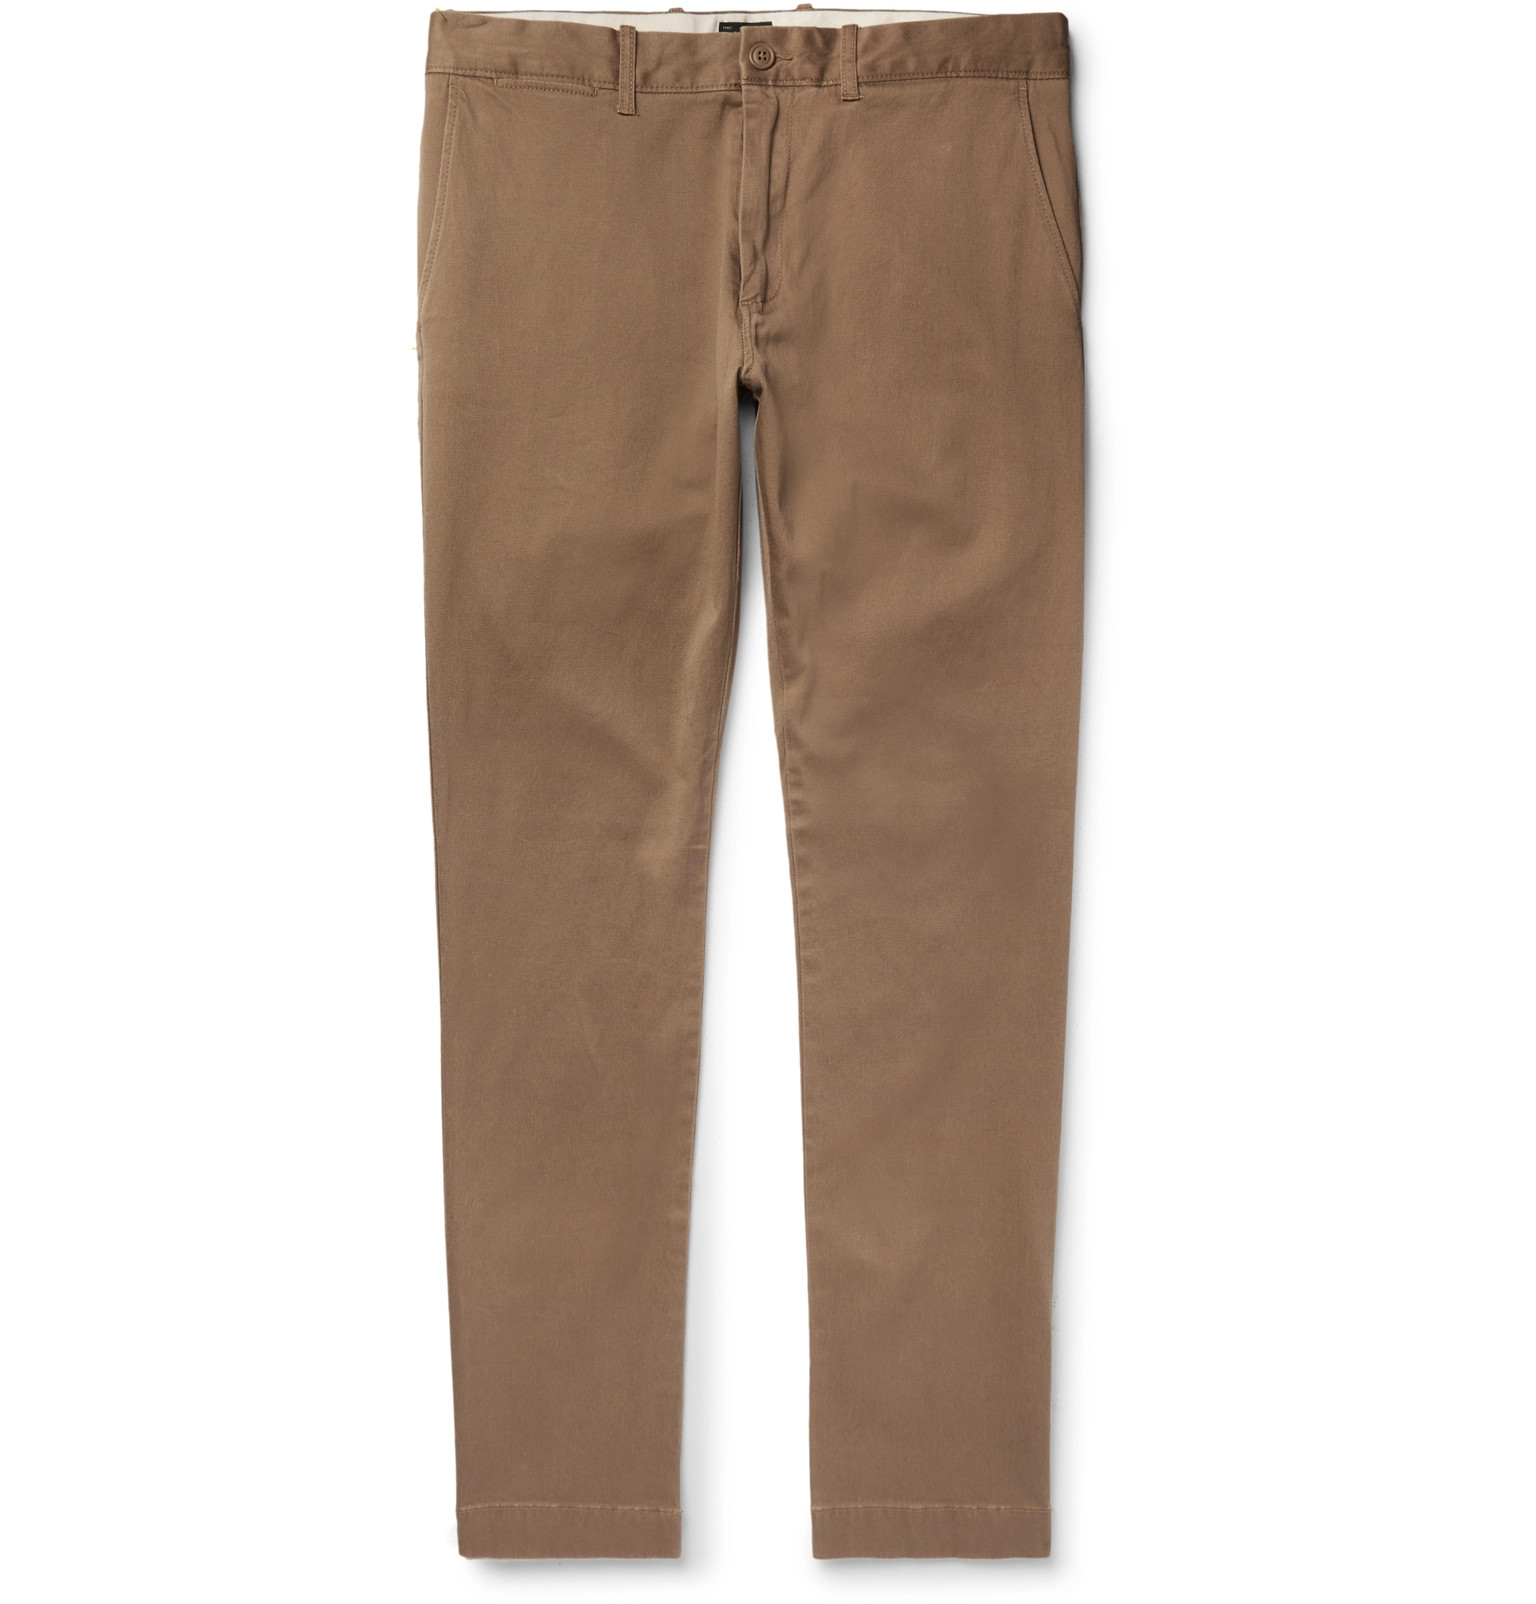 ad38898ee4ab J.Crew - 484 Slim-Fit Stretch-Cotton Twill Chinos